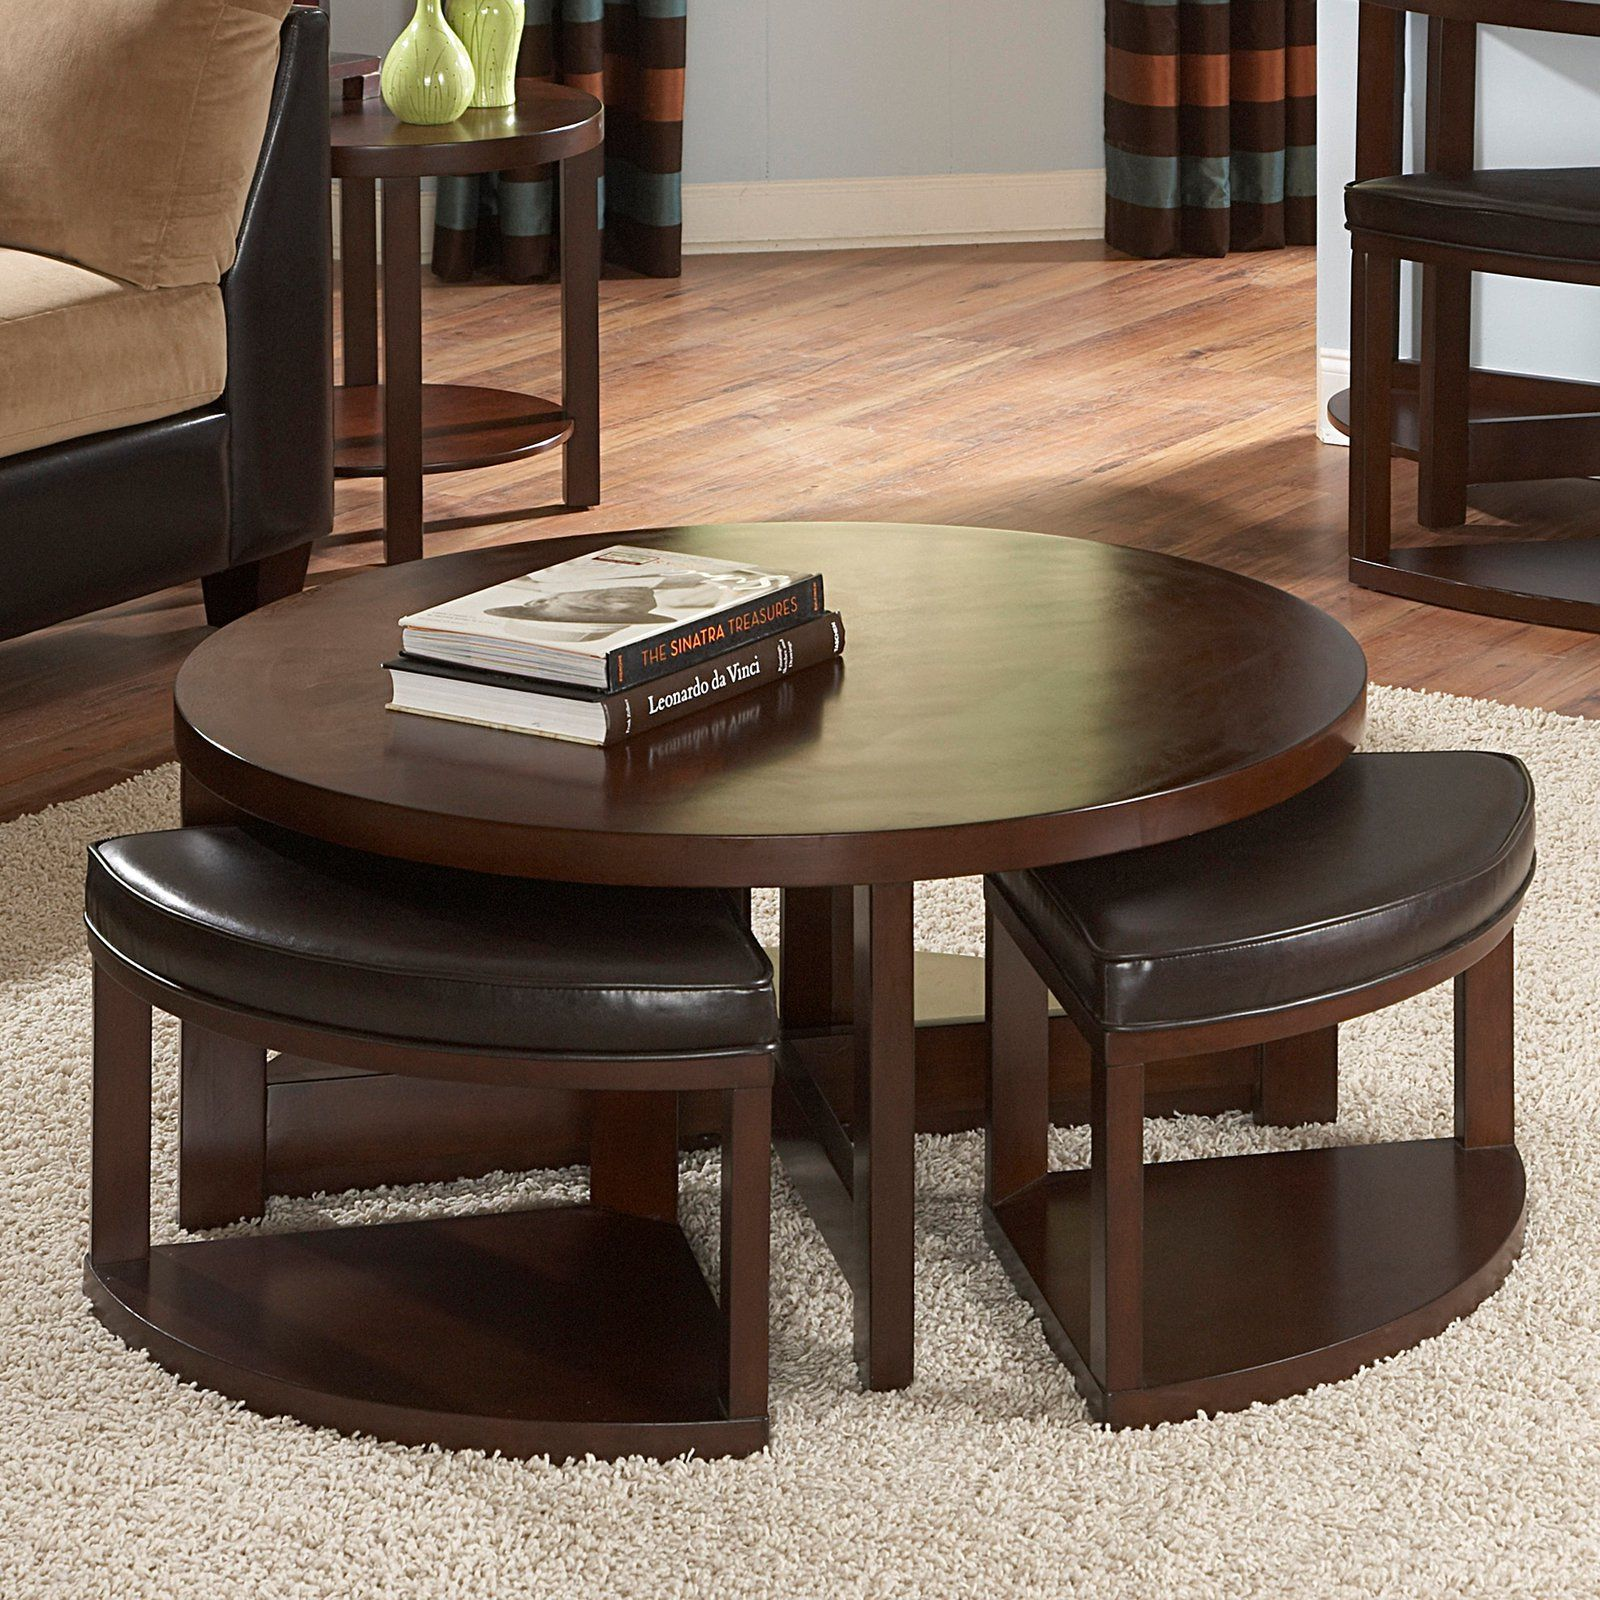 Beautiful 2 Ottomans as Coffee Tables